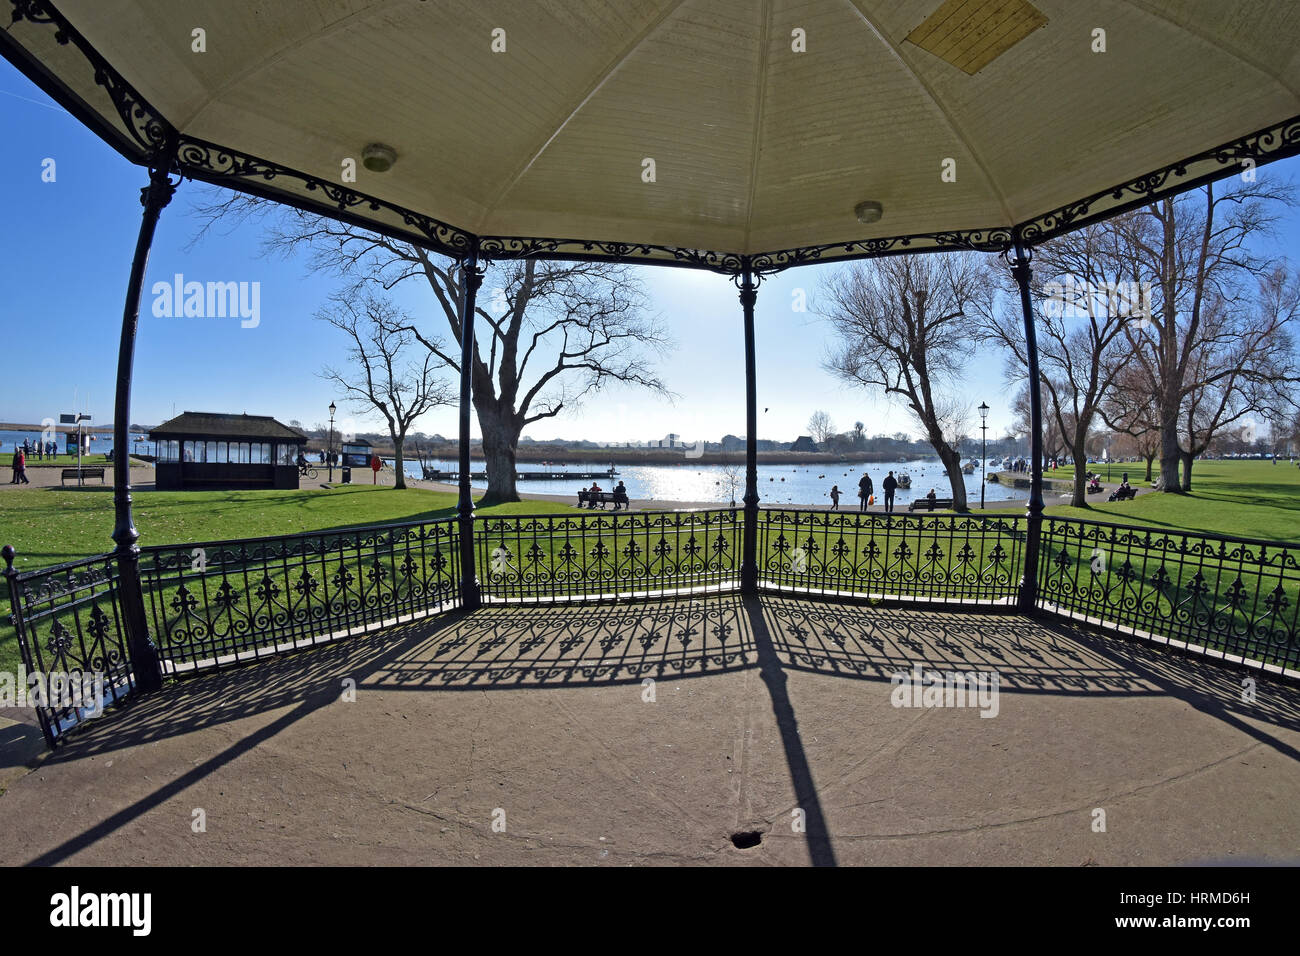 Christchurch harbour, viewed from inside the bandstand in Dorset, England - Stock Image